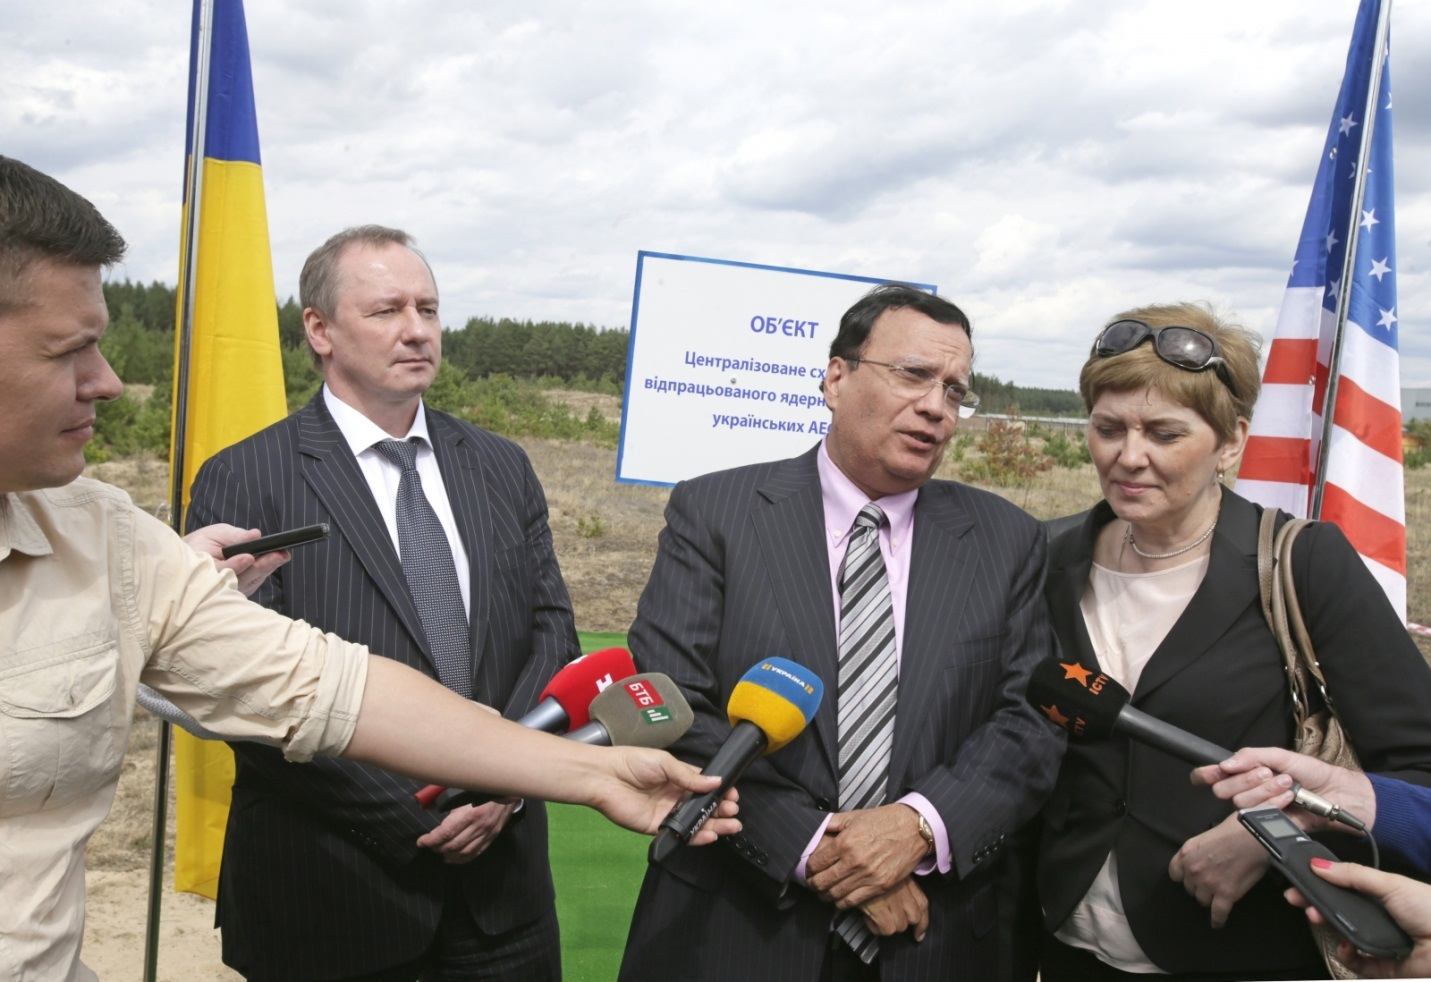 Cornerstone Marking Ukraine's Central Spent Fuel Storage Facility Placed in Chernobyl's Exclusion Zone